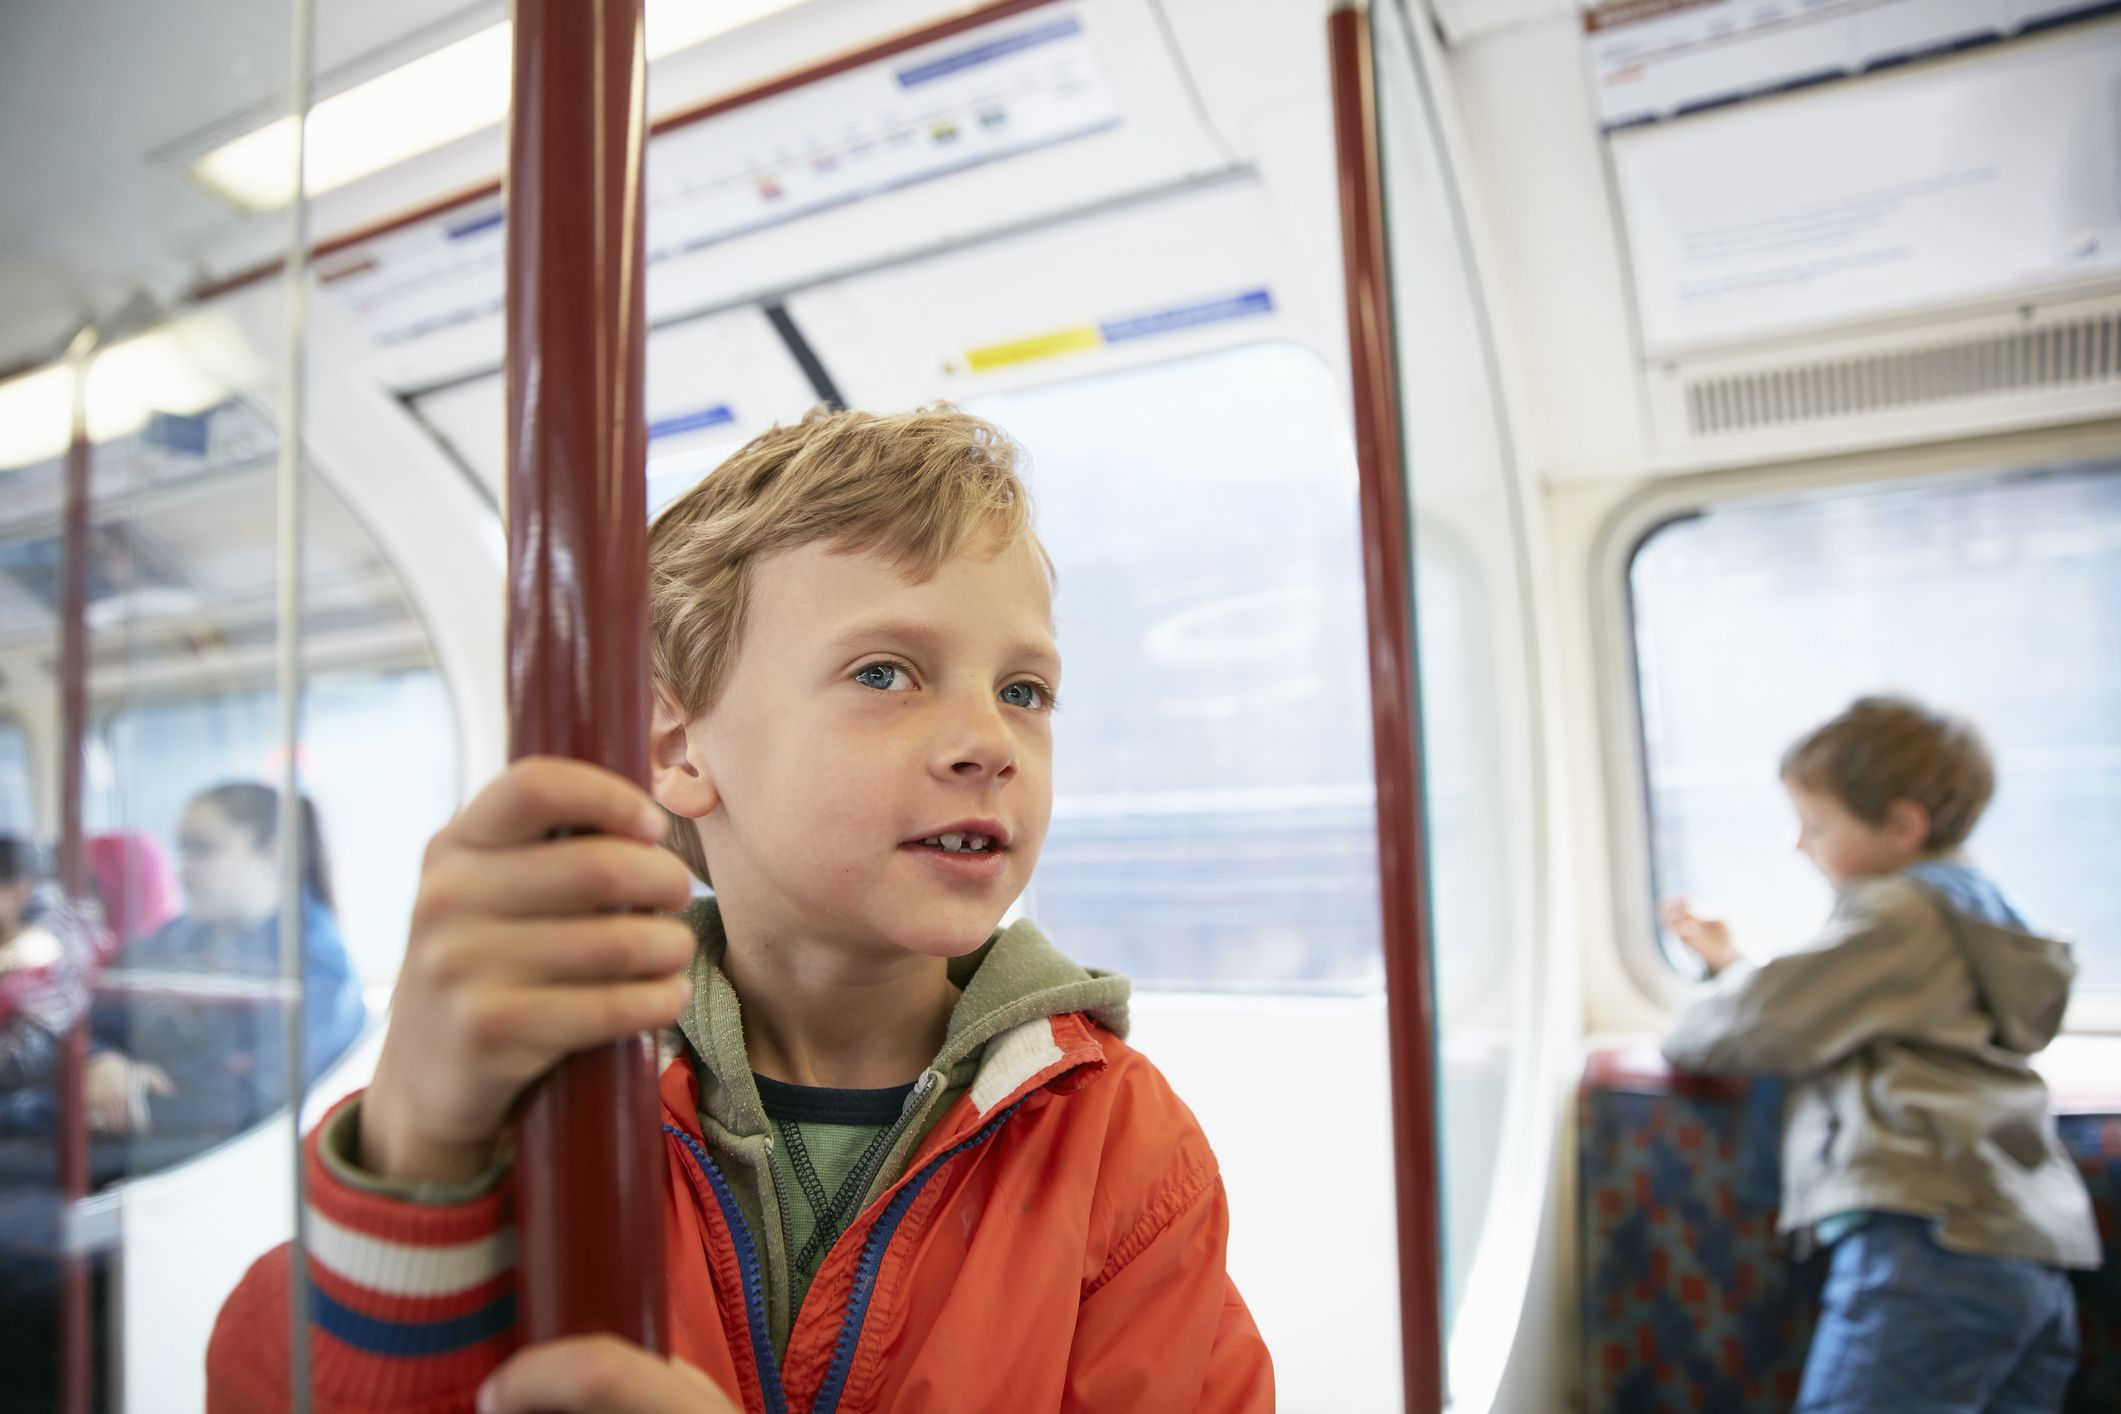 Should I Buy an Oyster Card for My Children?